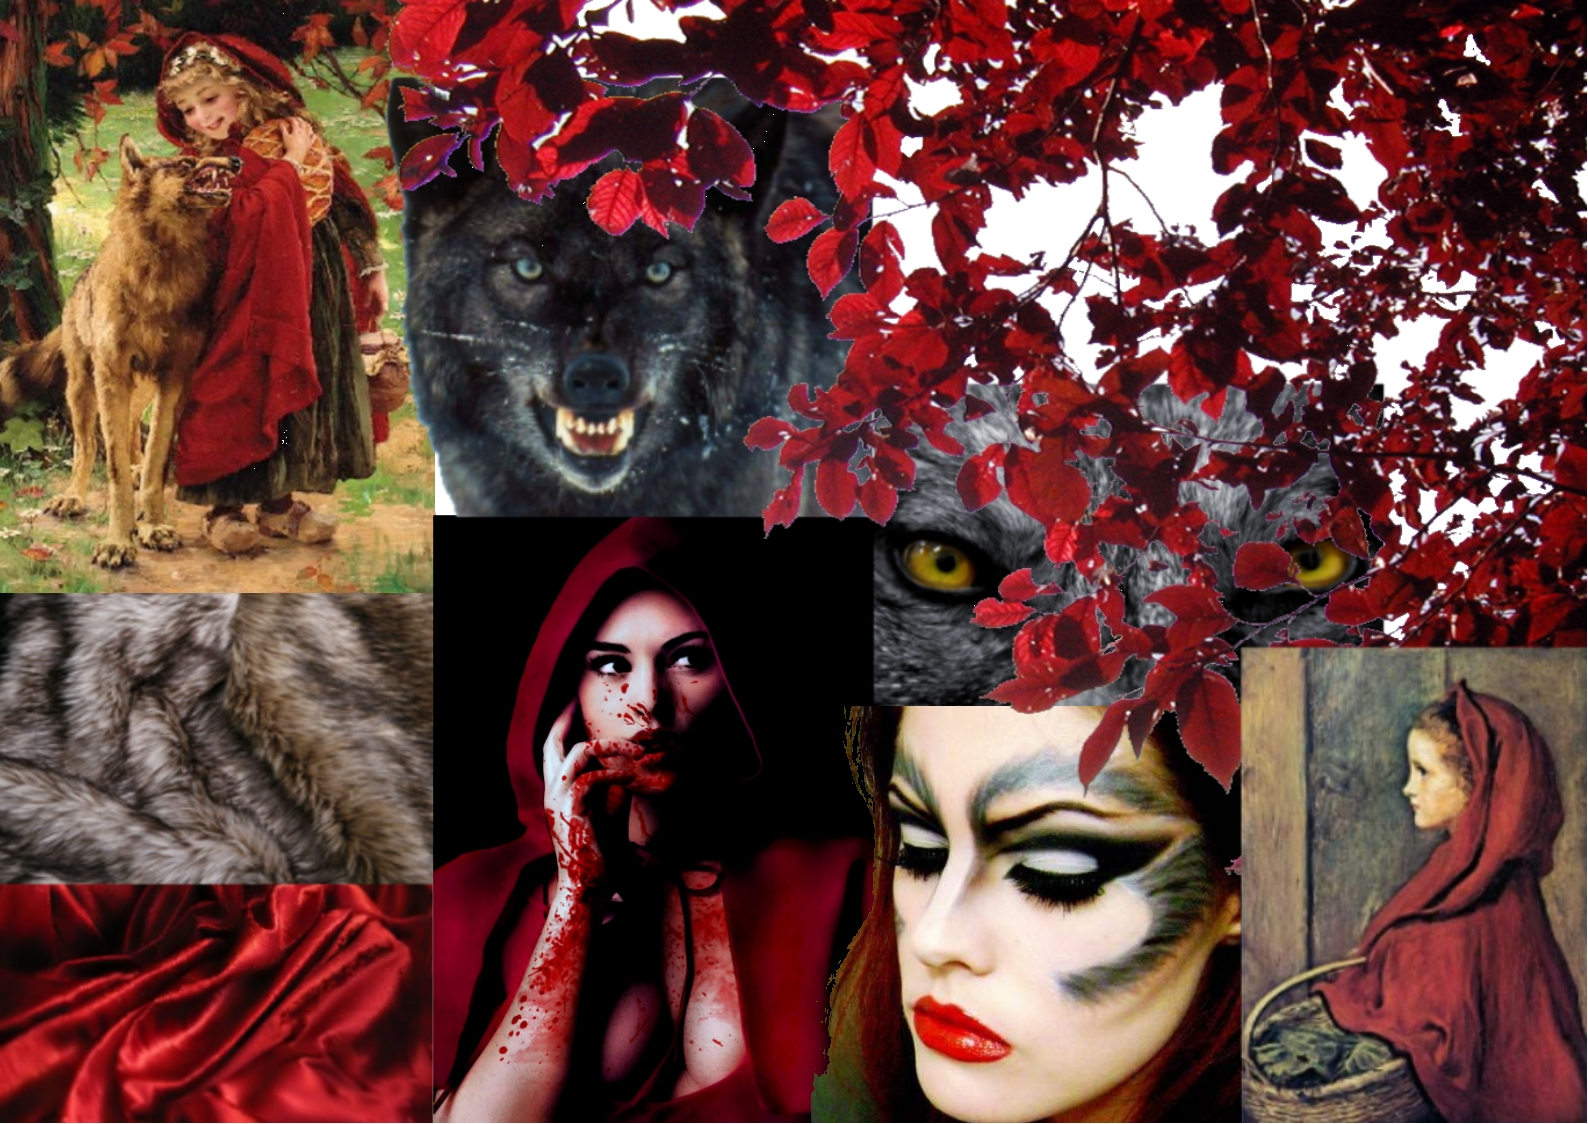 Laura-MarieEvil Little Red Riding Hood Makeup